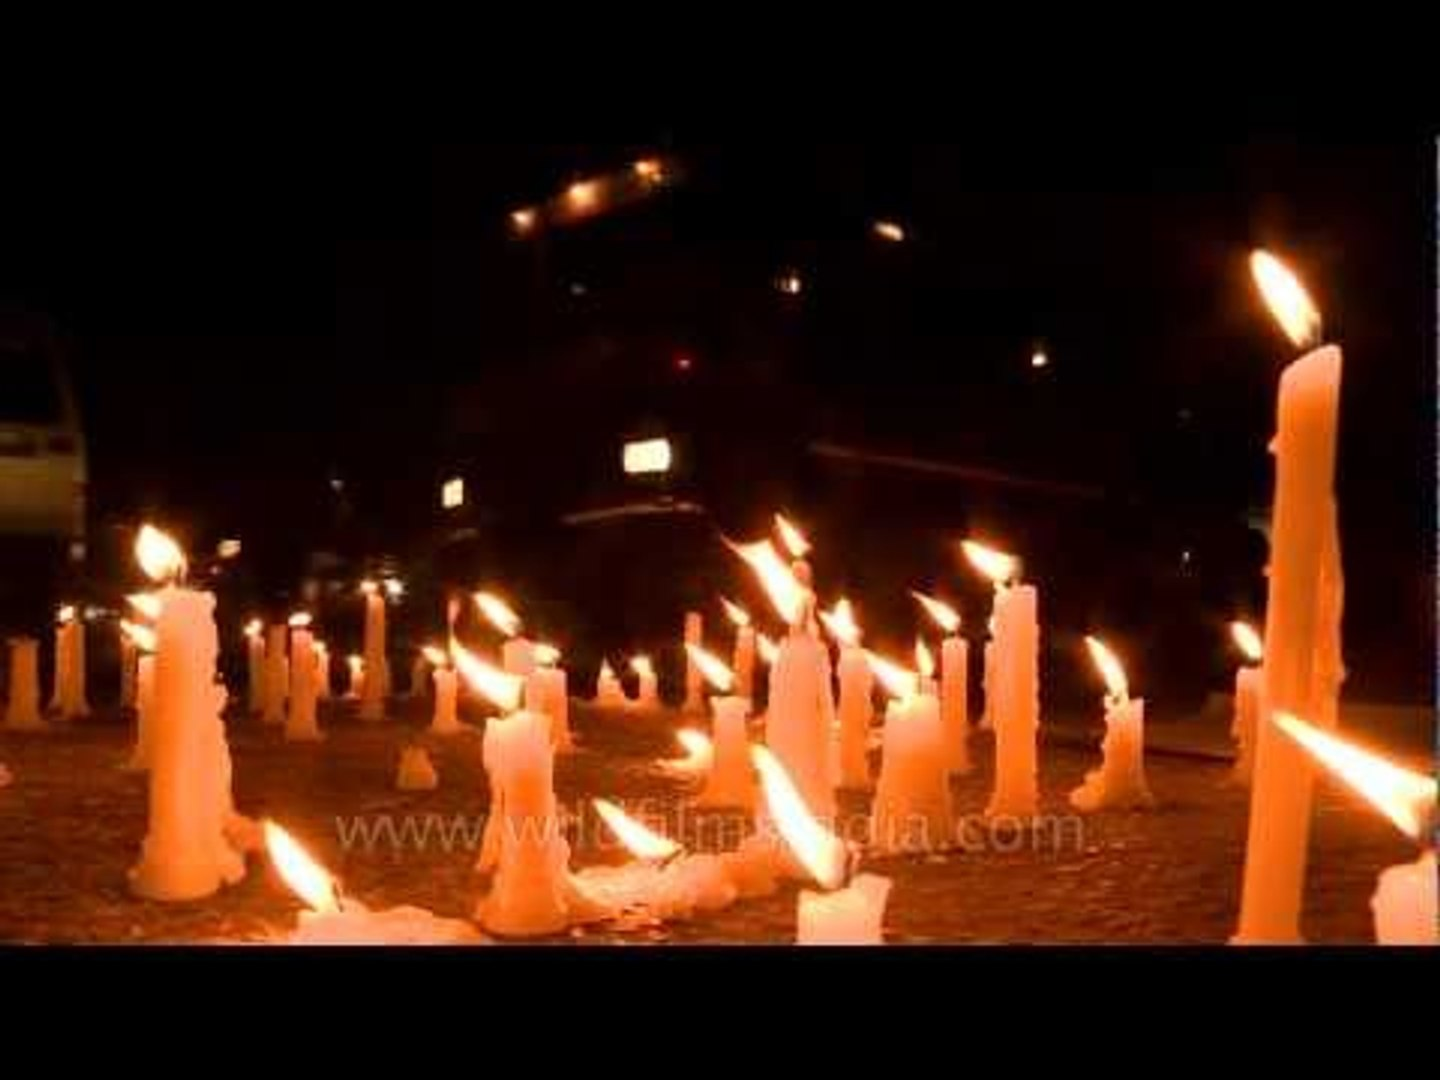 Melting candles and youth's demonstration against physical assault in Delhi